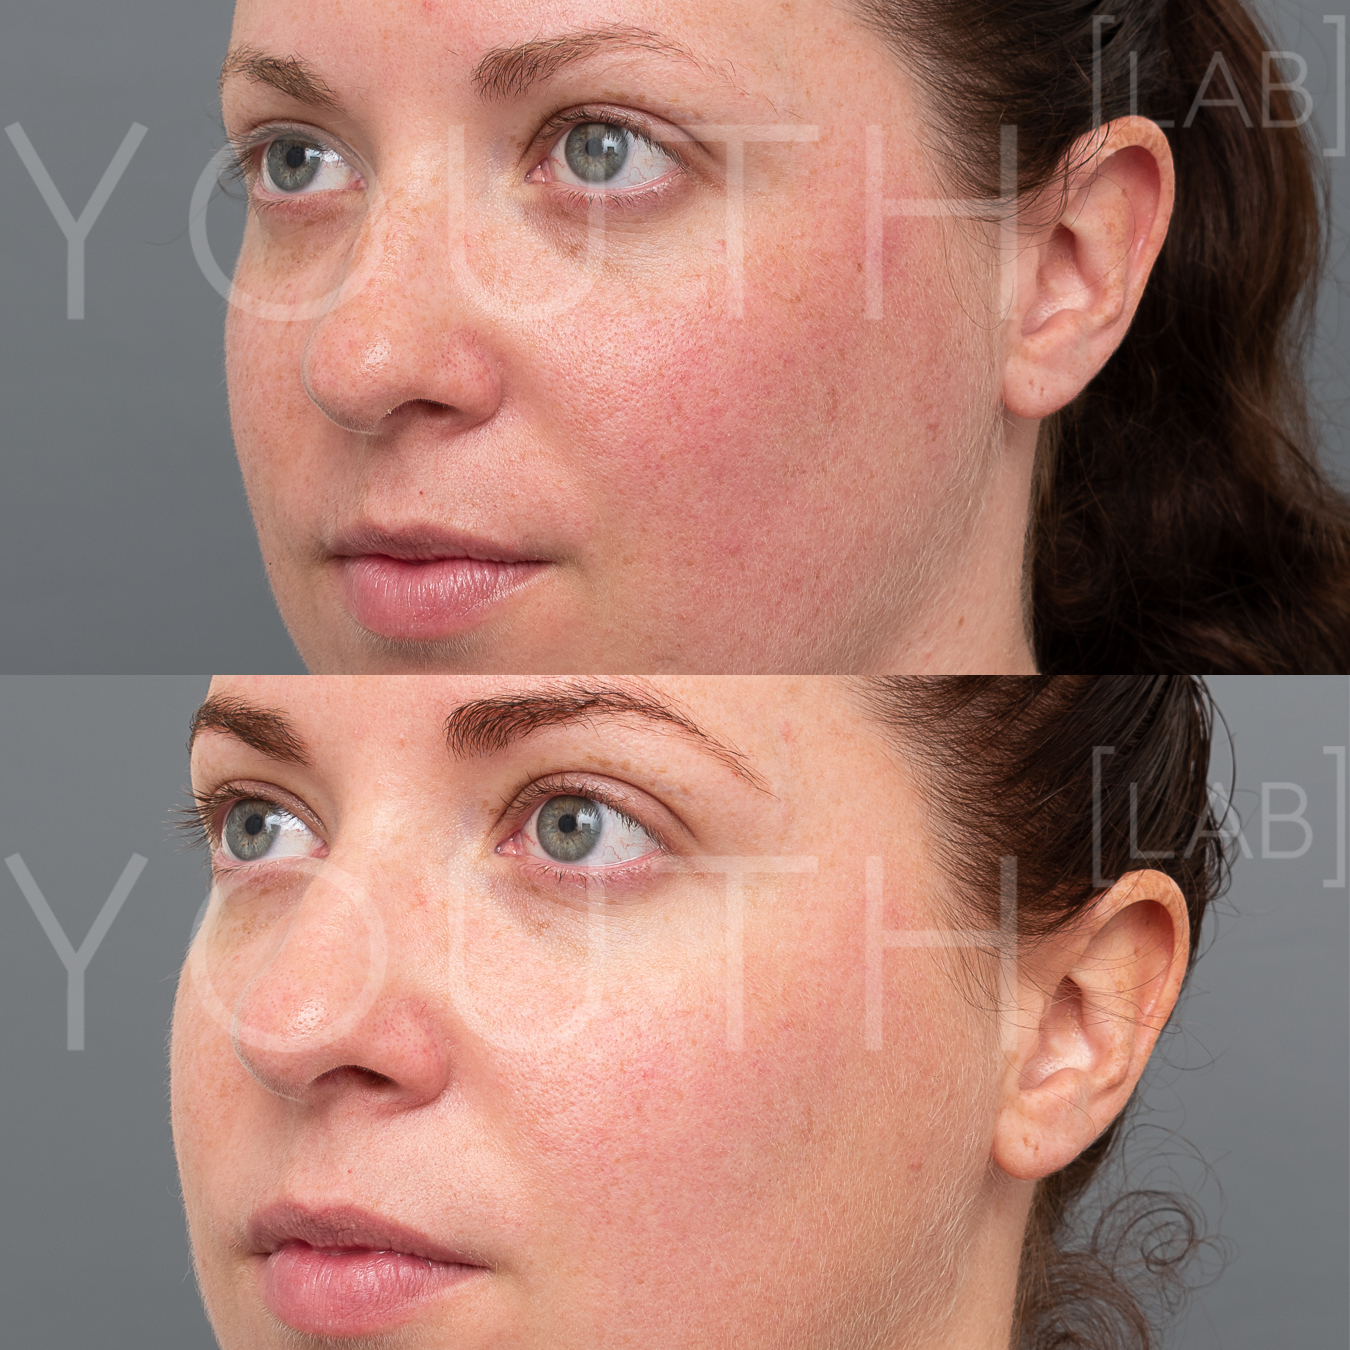 Treatment:  2 x BBL Photorejuvenation + 2 x Hydrafacials  Targeting:  Redness + Slight Congestion  Photo Filter:  Close Up  Result:  Reduction in redness and light sun damage, resulting in lighter and smoother skin tone.